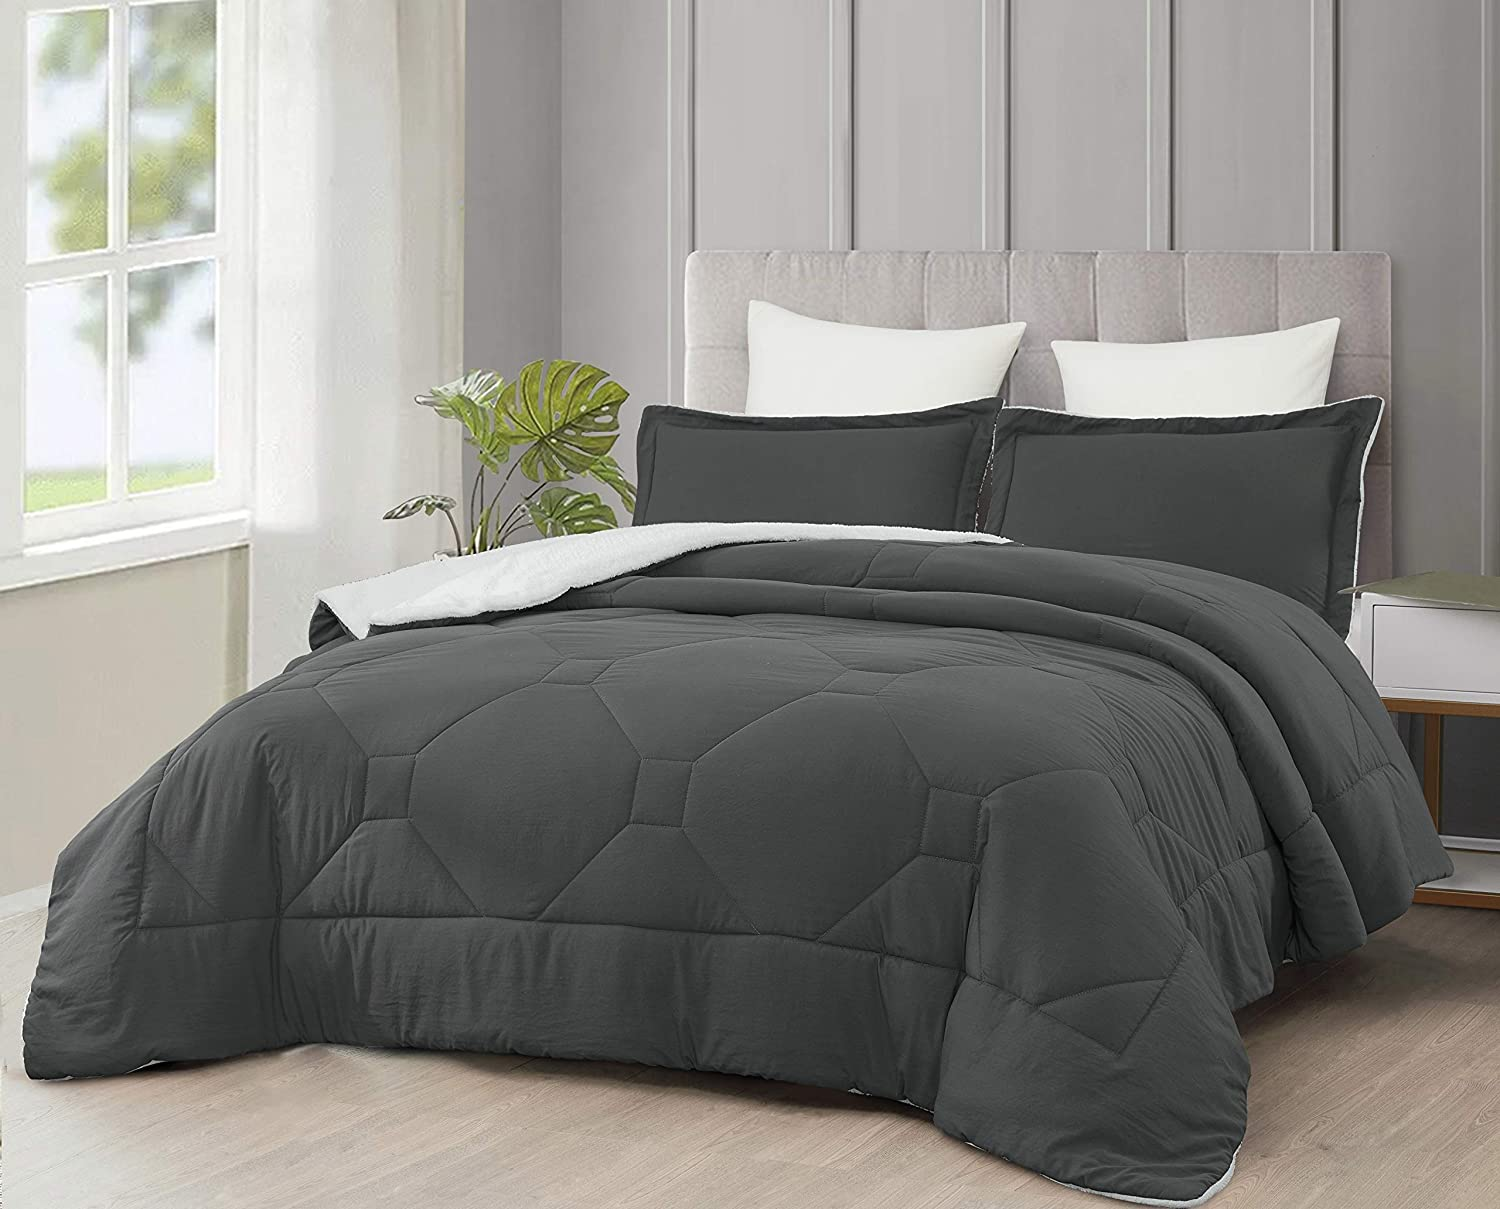 Cozie Nebulous Ultra Soft Max 74% OFF Micromink Sherpa Max 74% OFF Down Comf Alternative